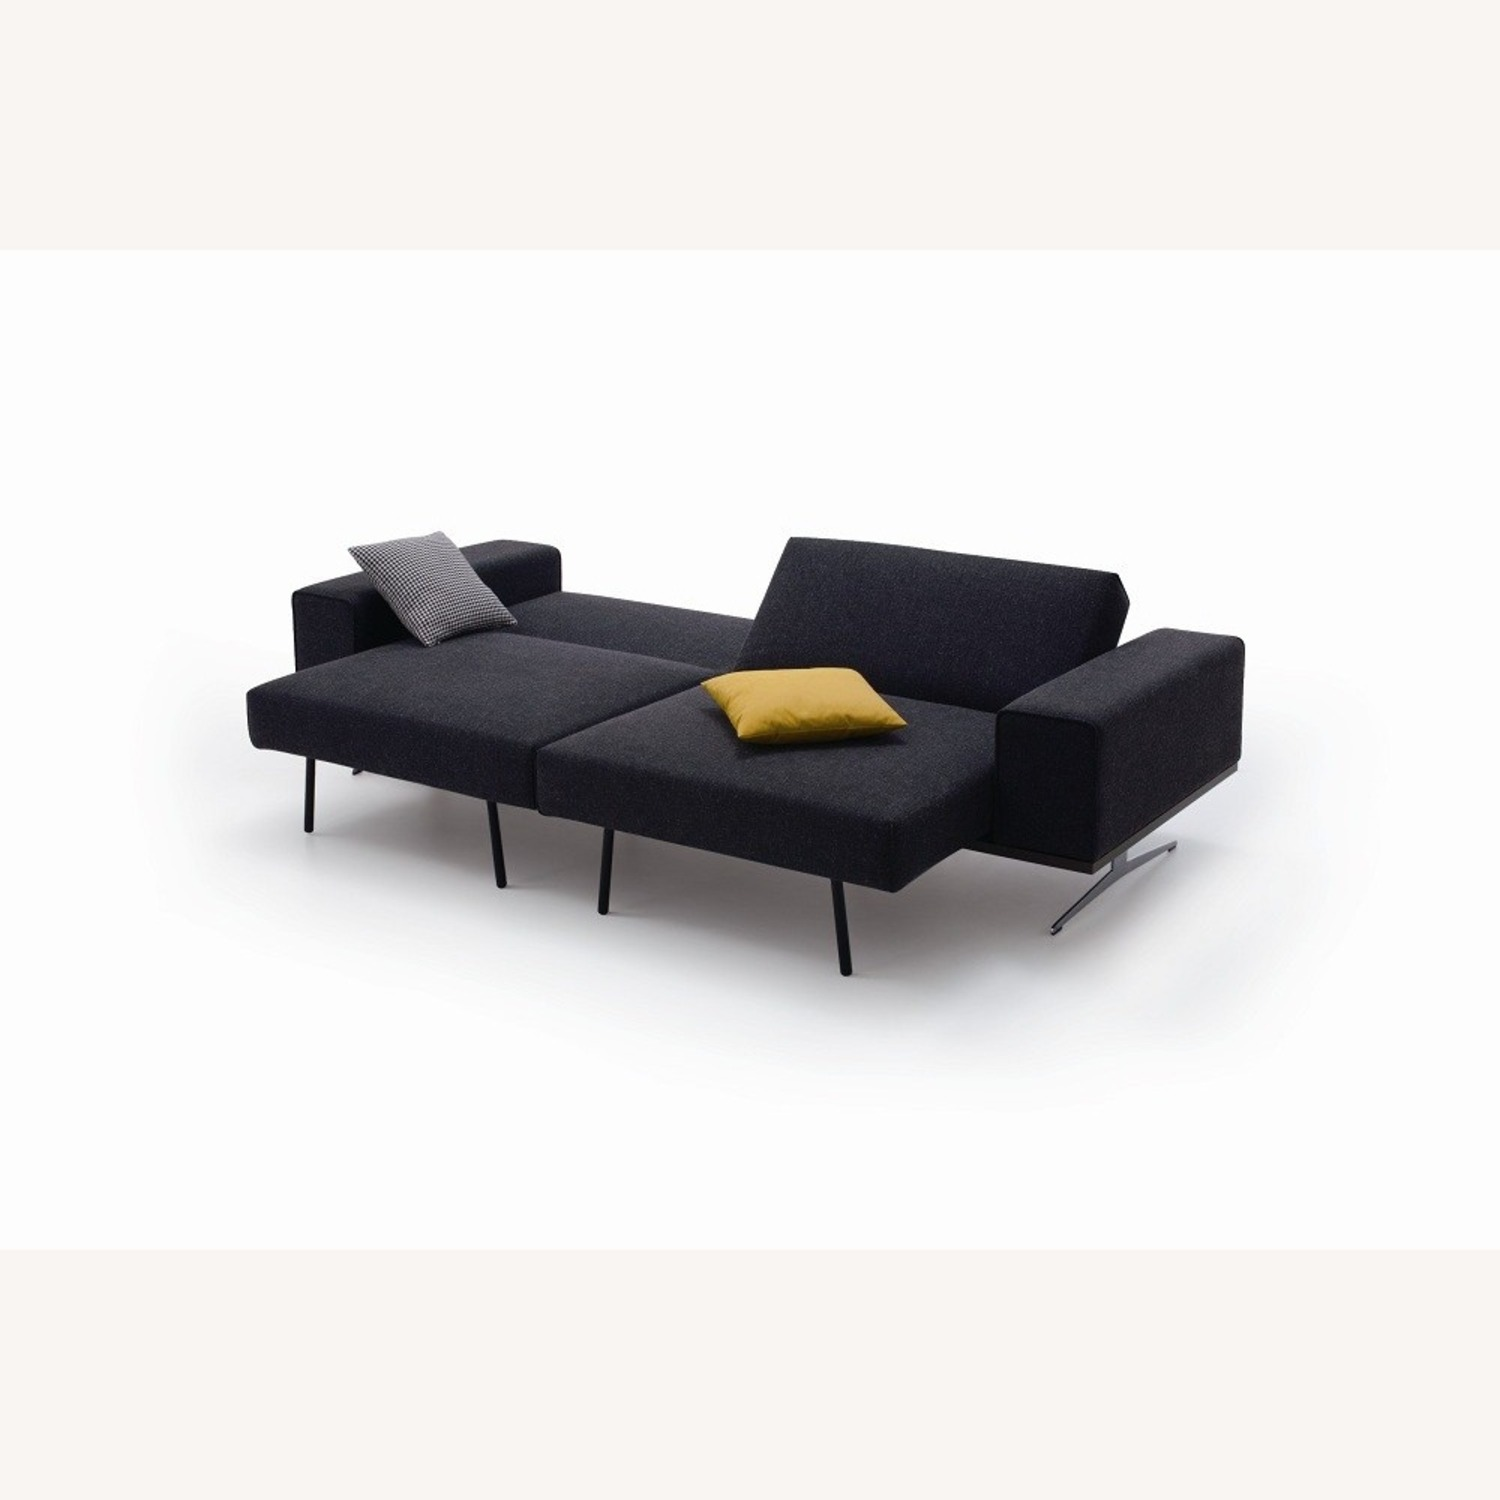 Wide Sofa Bed In Black Fabric Upholstery - image-2